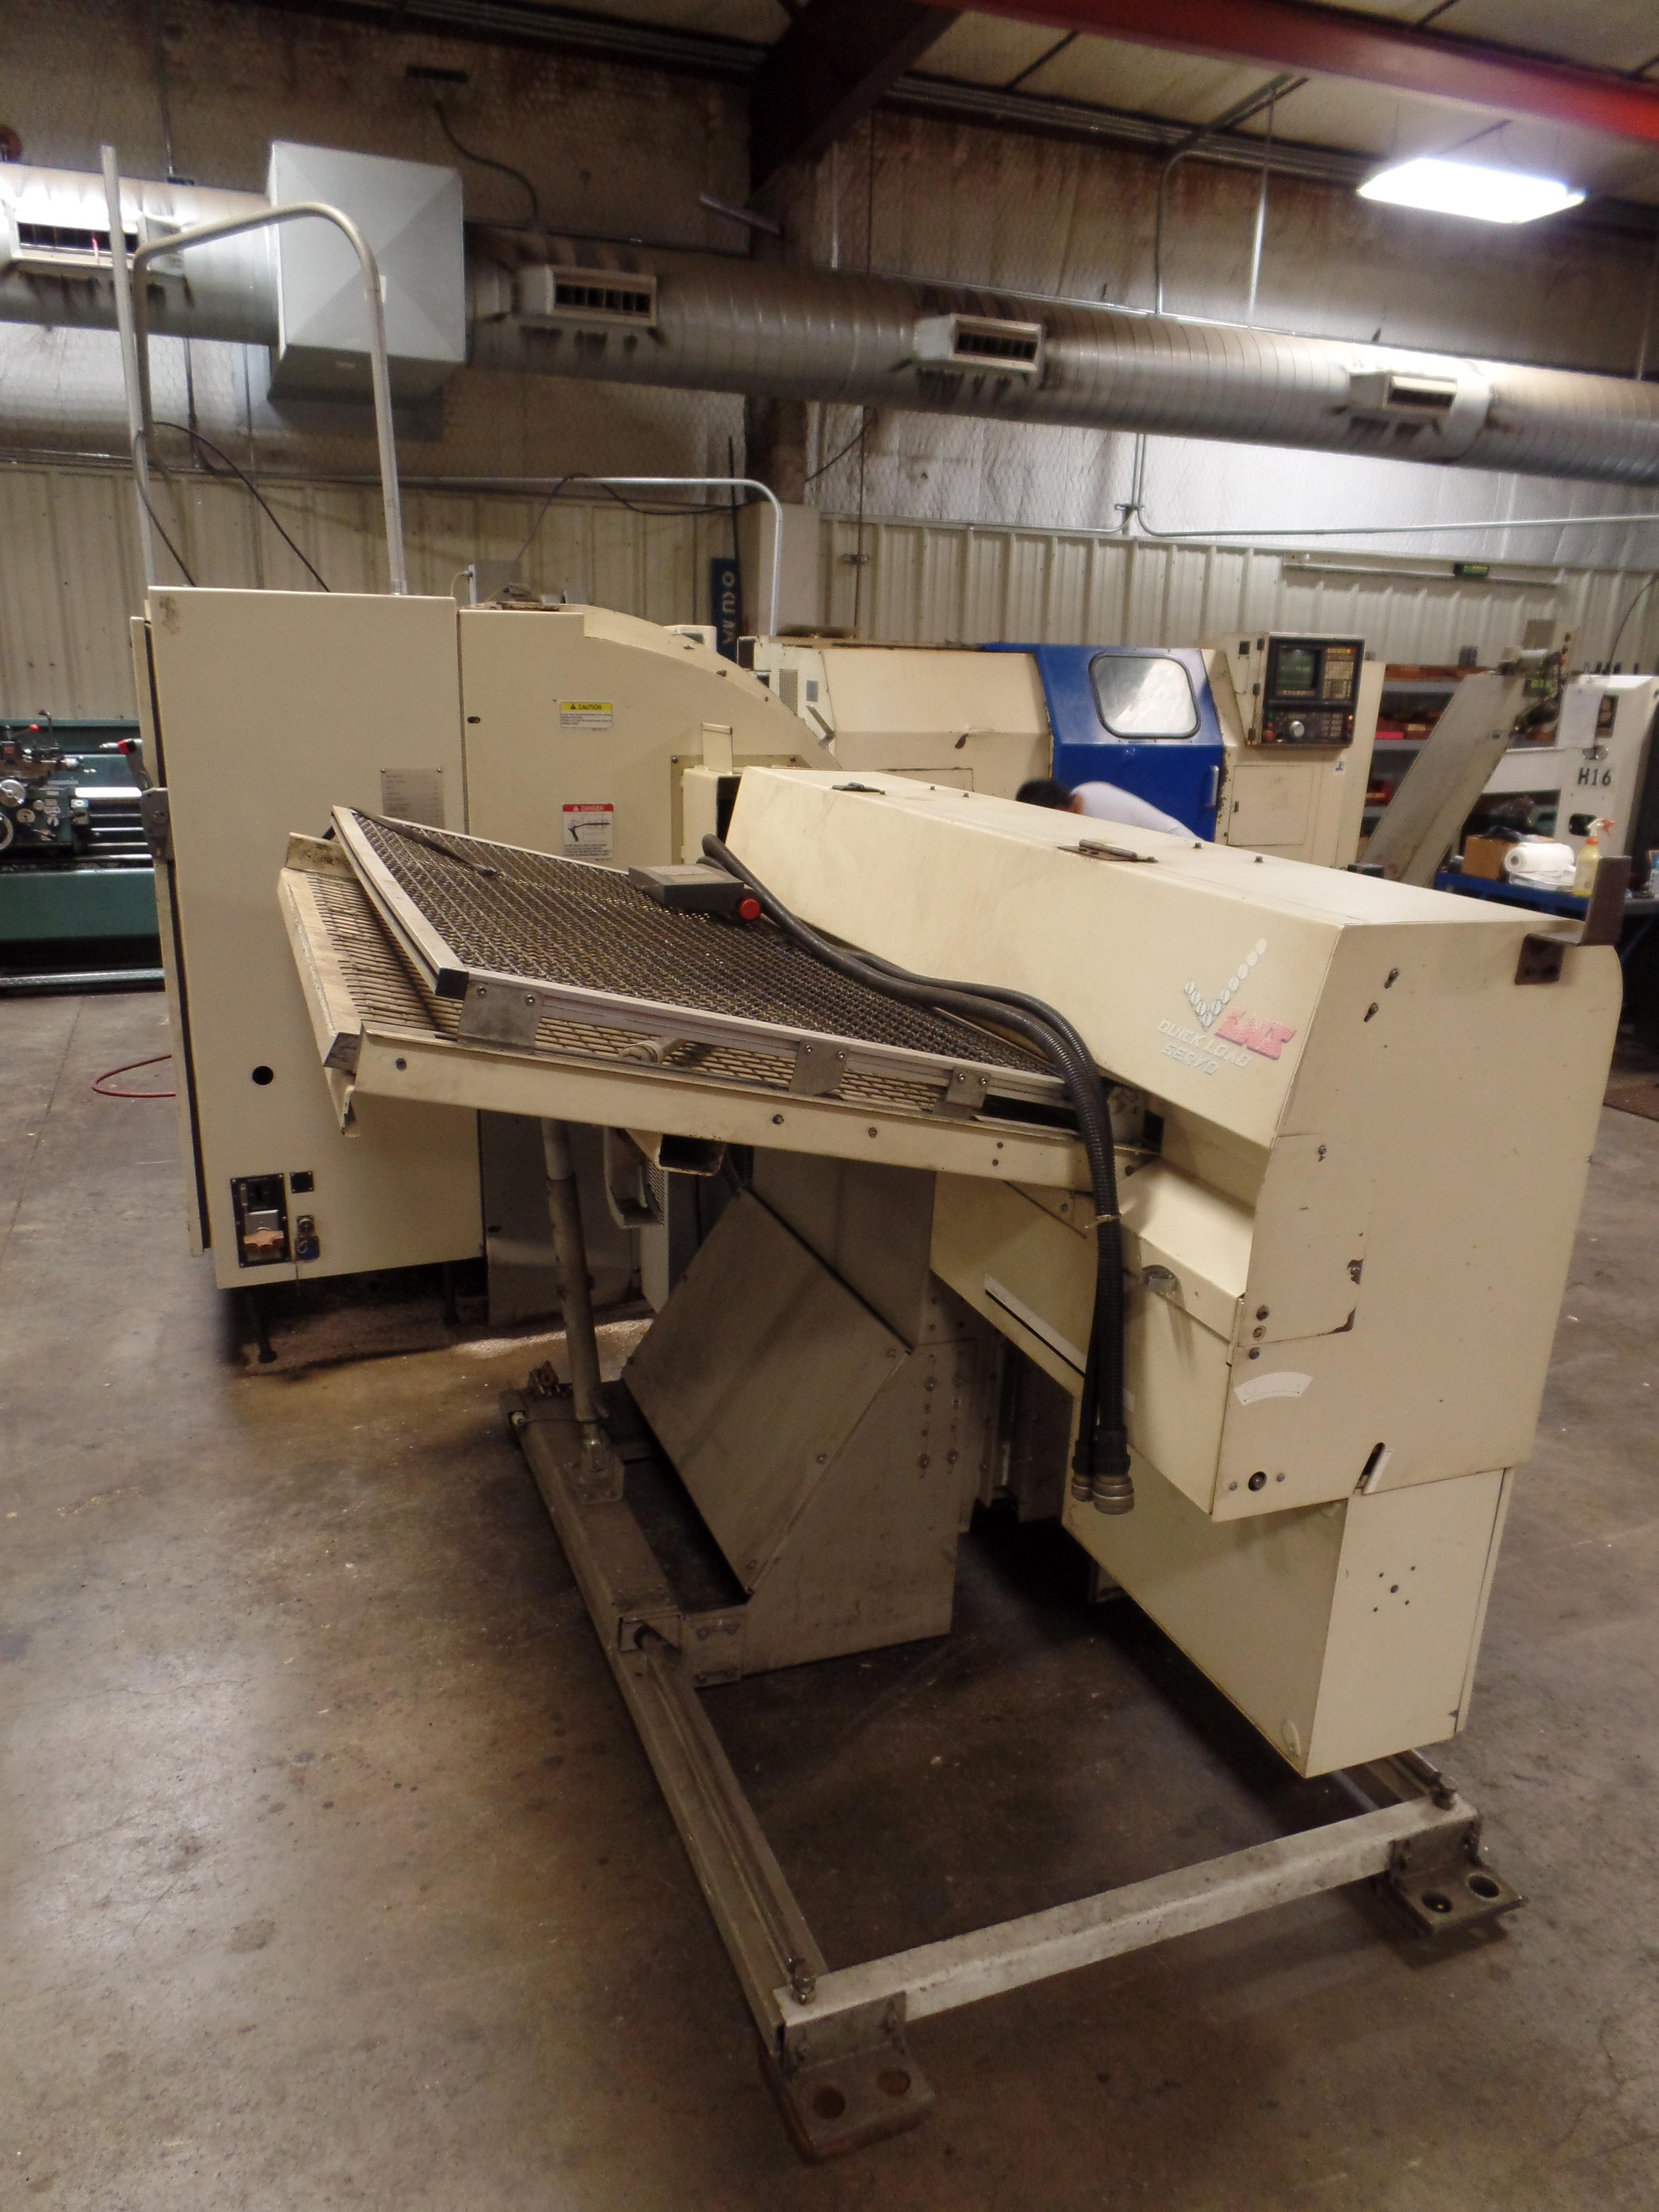 1999 Okuma Crown 762SBB big bore 2-axis CNC turning center with LNS bar feed, OSP700L control, parts - Image 11 of 16